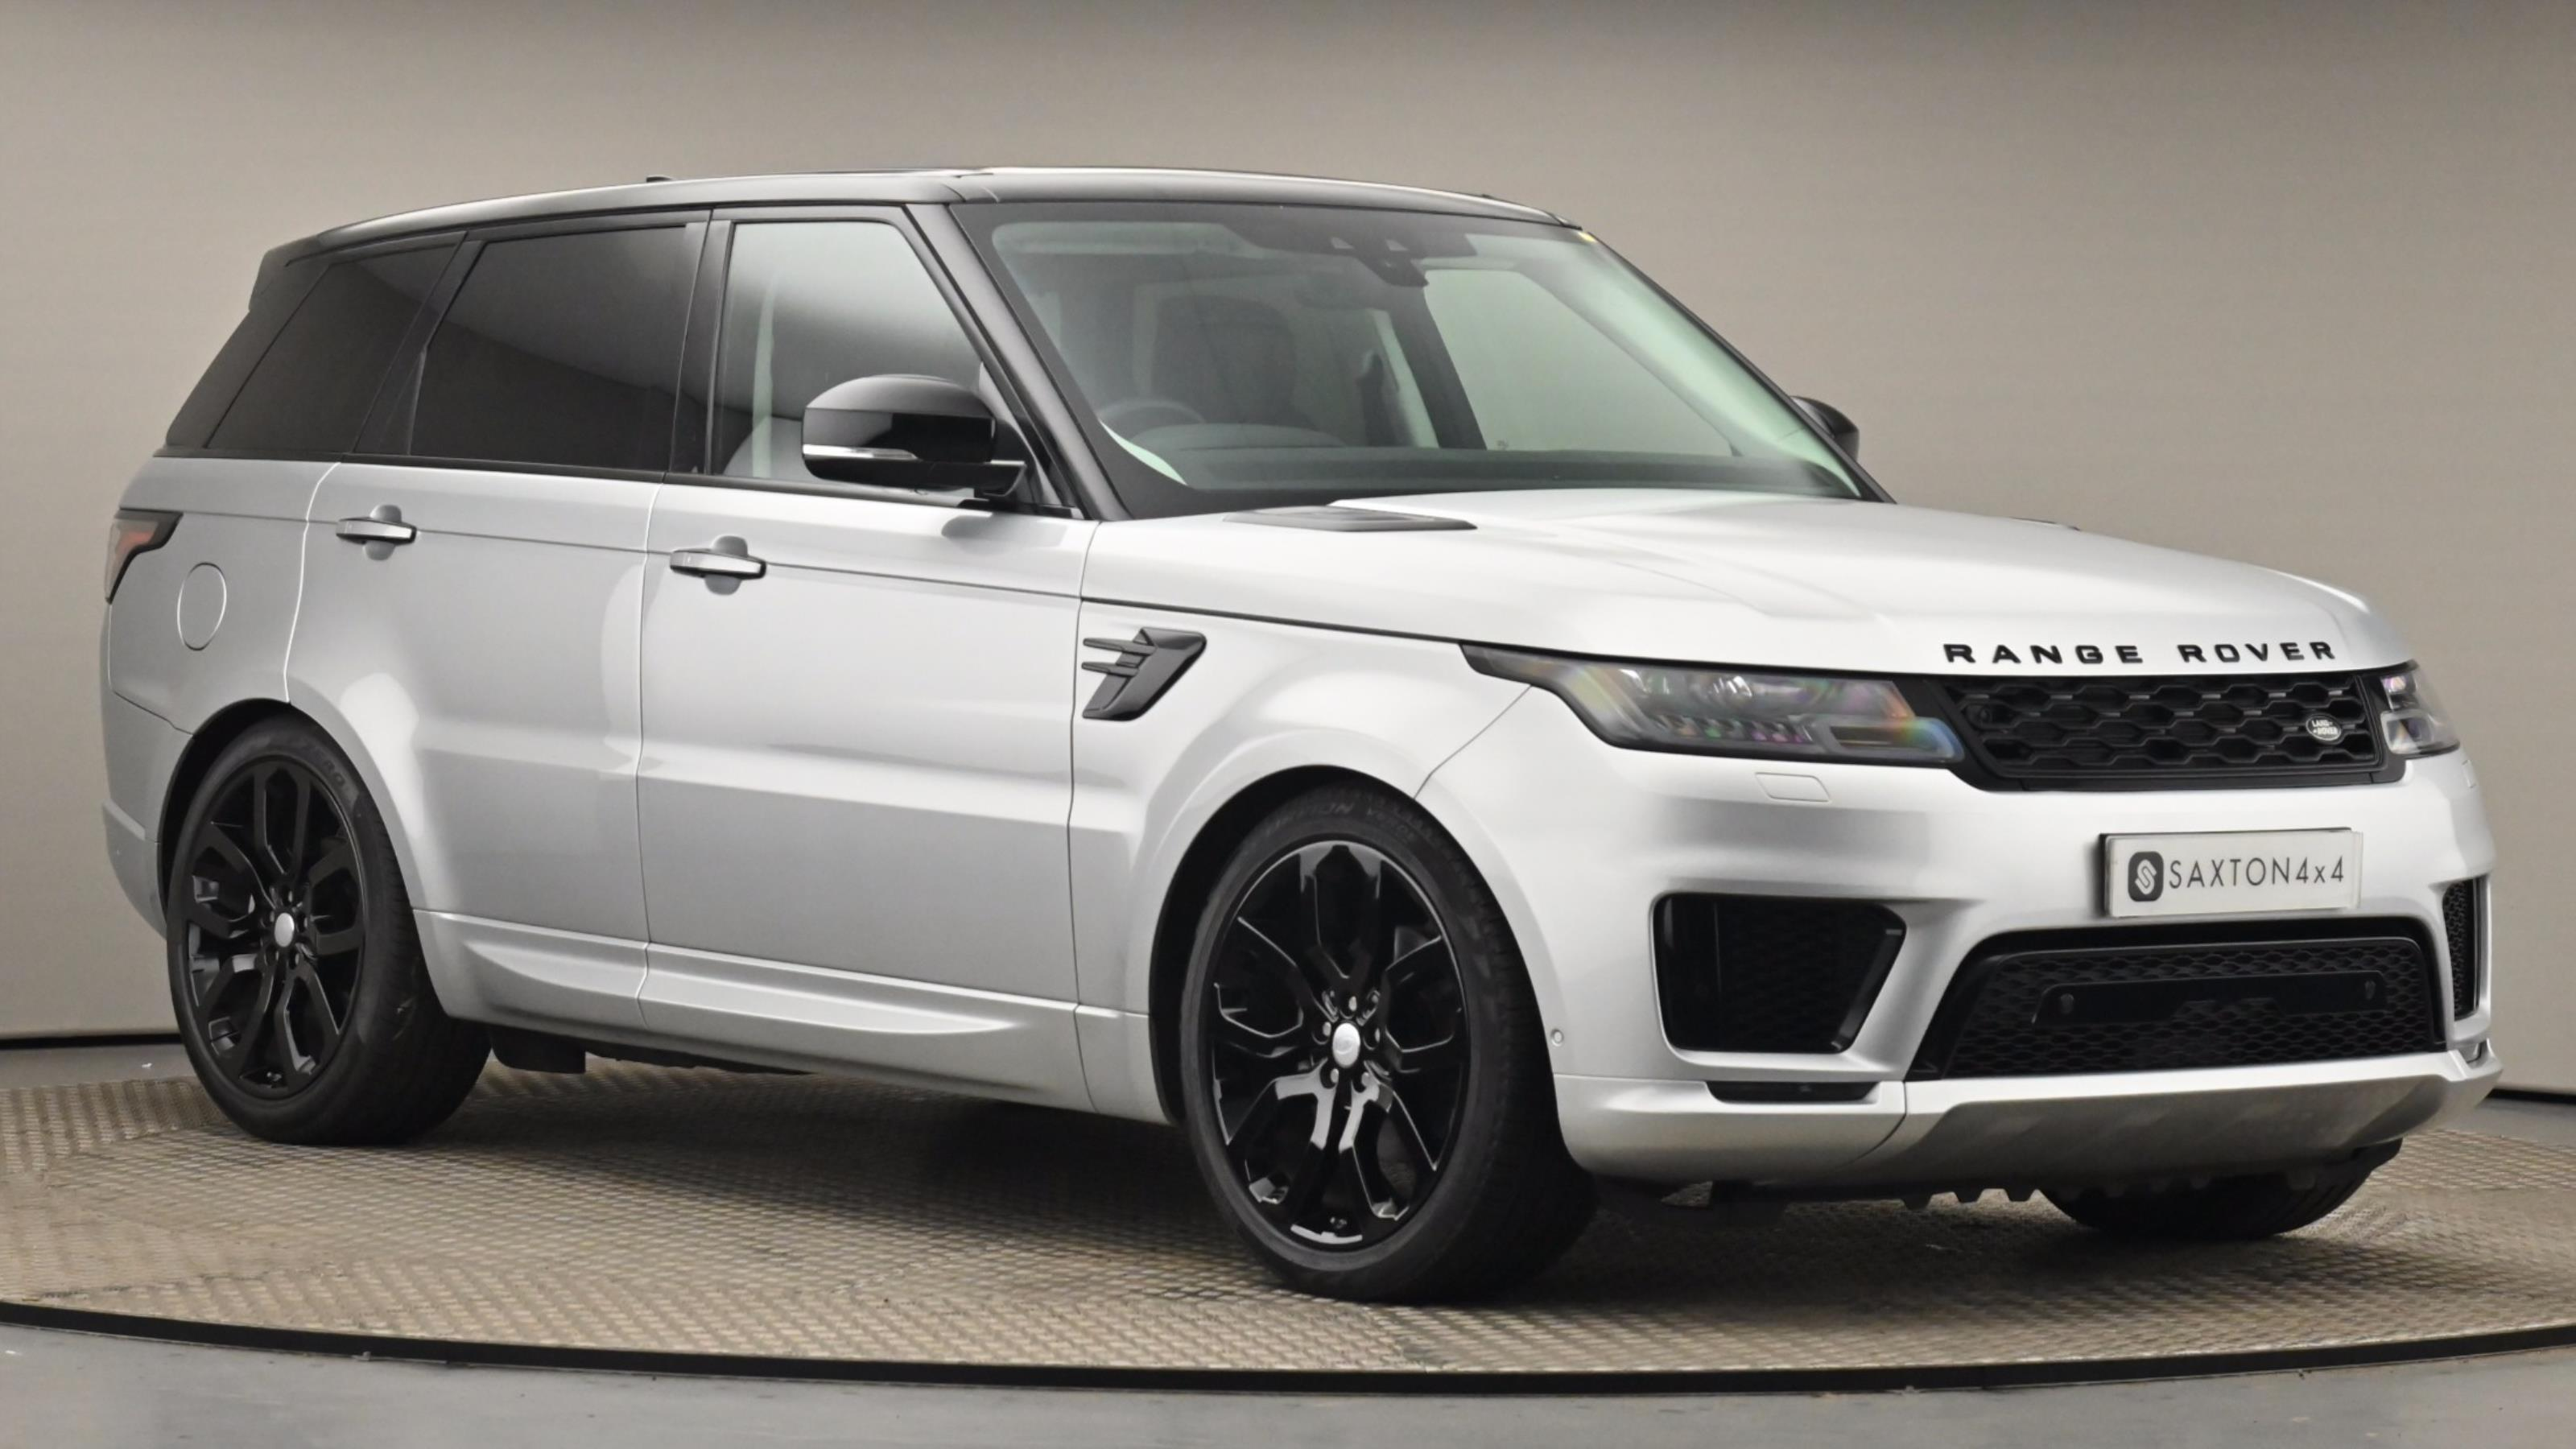 Used 2018 Land Rover RANGE ROVER SPORT 3.0 SDV6 Autobiography Dynamic 5dr Auto SILVER at Saxton4x4